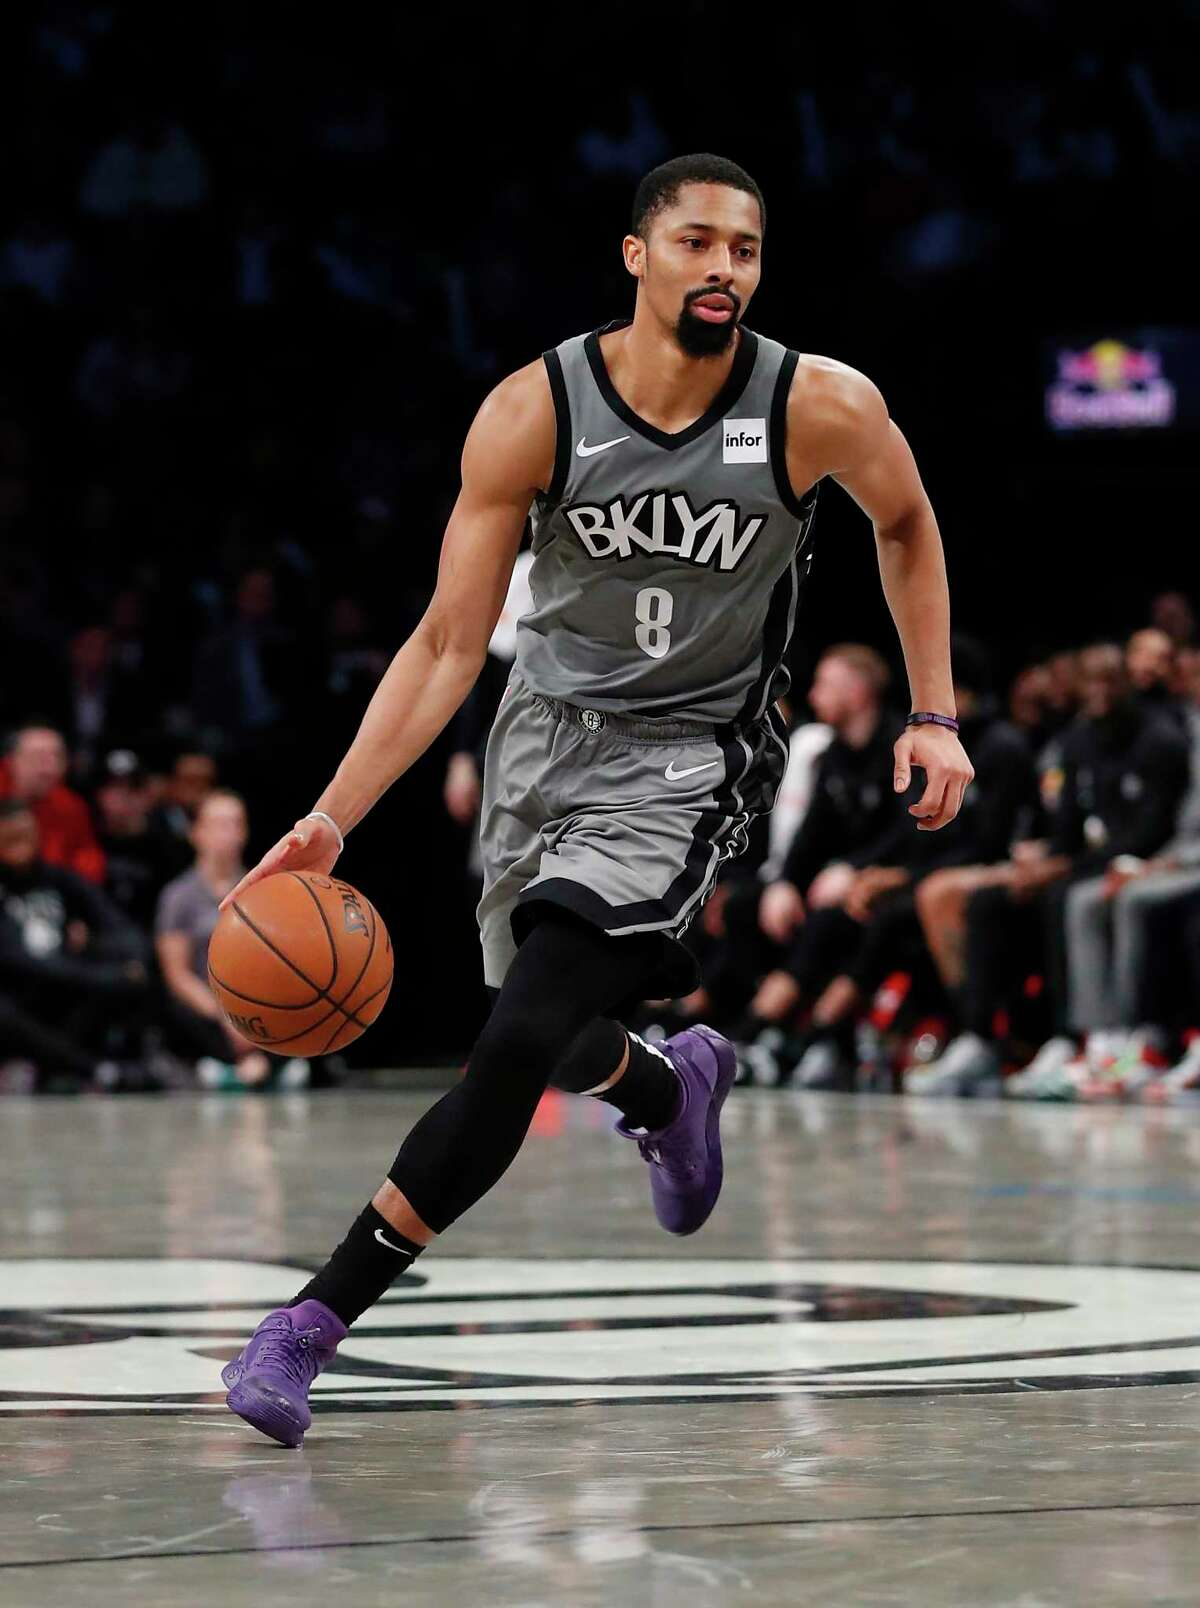 Brooklyn Nets guard Spencer Dinwiddie (8) drives to the basket against the Atlanta Hawks during the second half of an NBA basketball game, Saturday, Dec. 21, 2019, in New York. (AP Photo/Noah K. Murray)